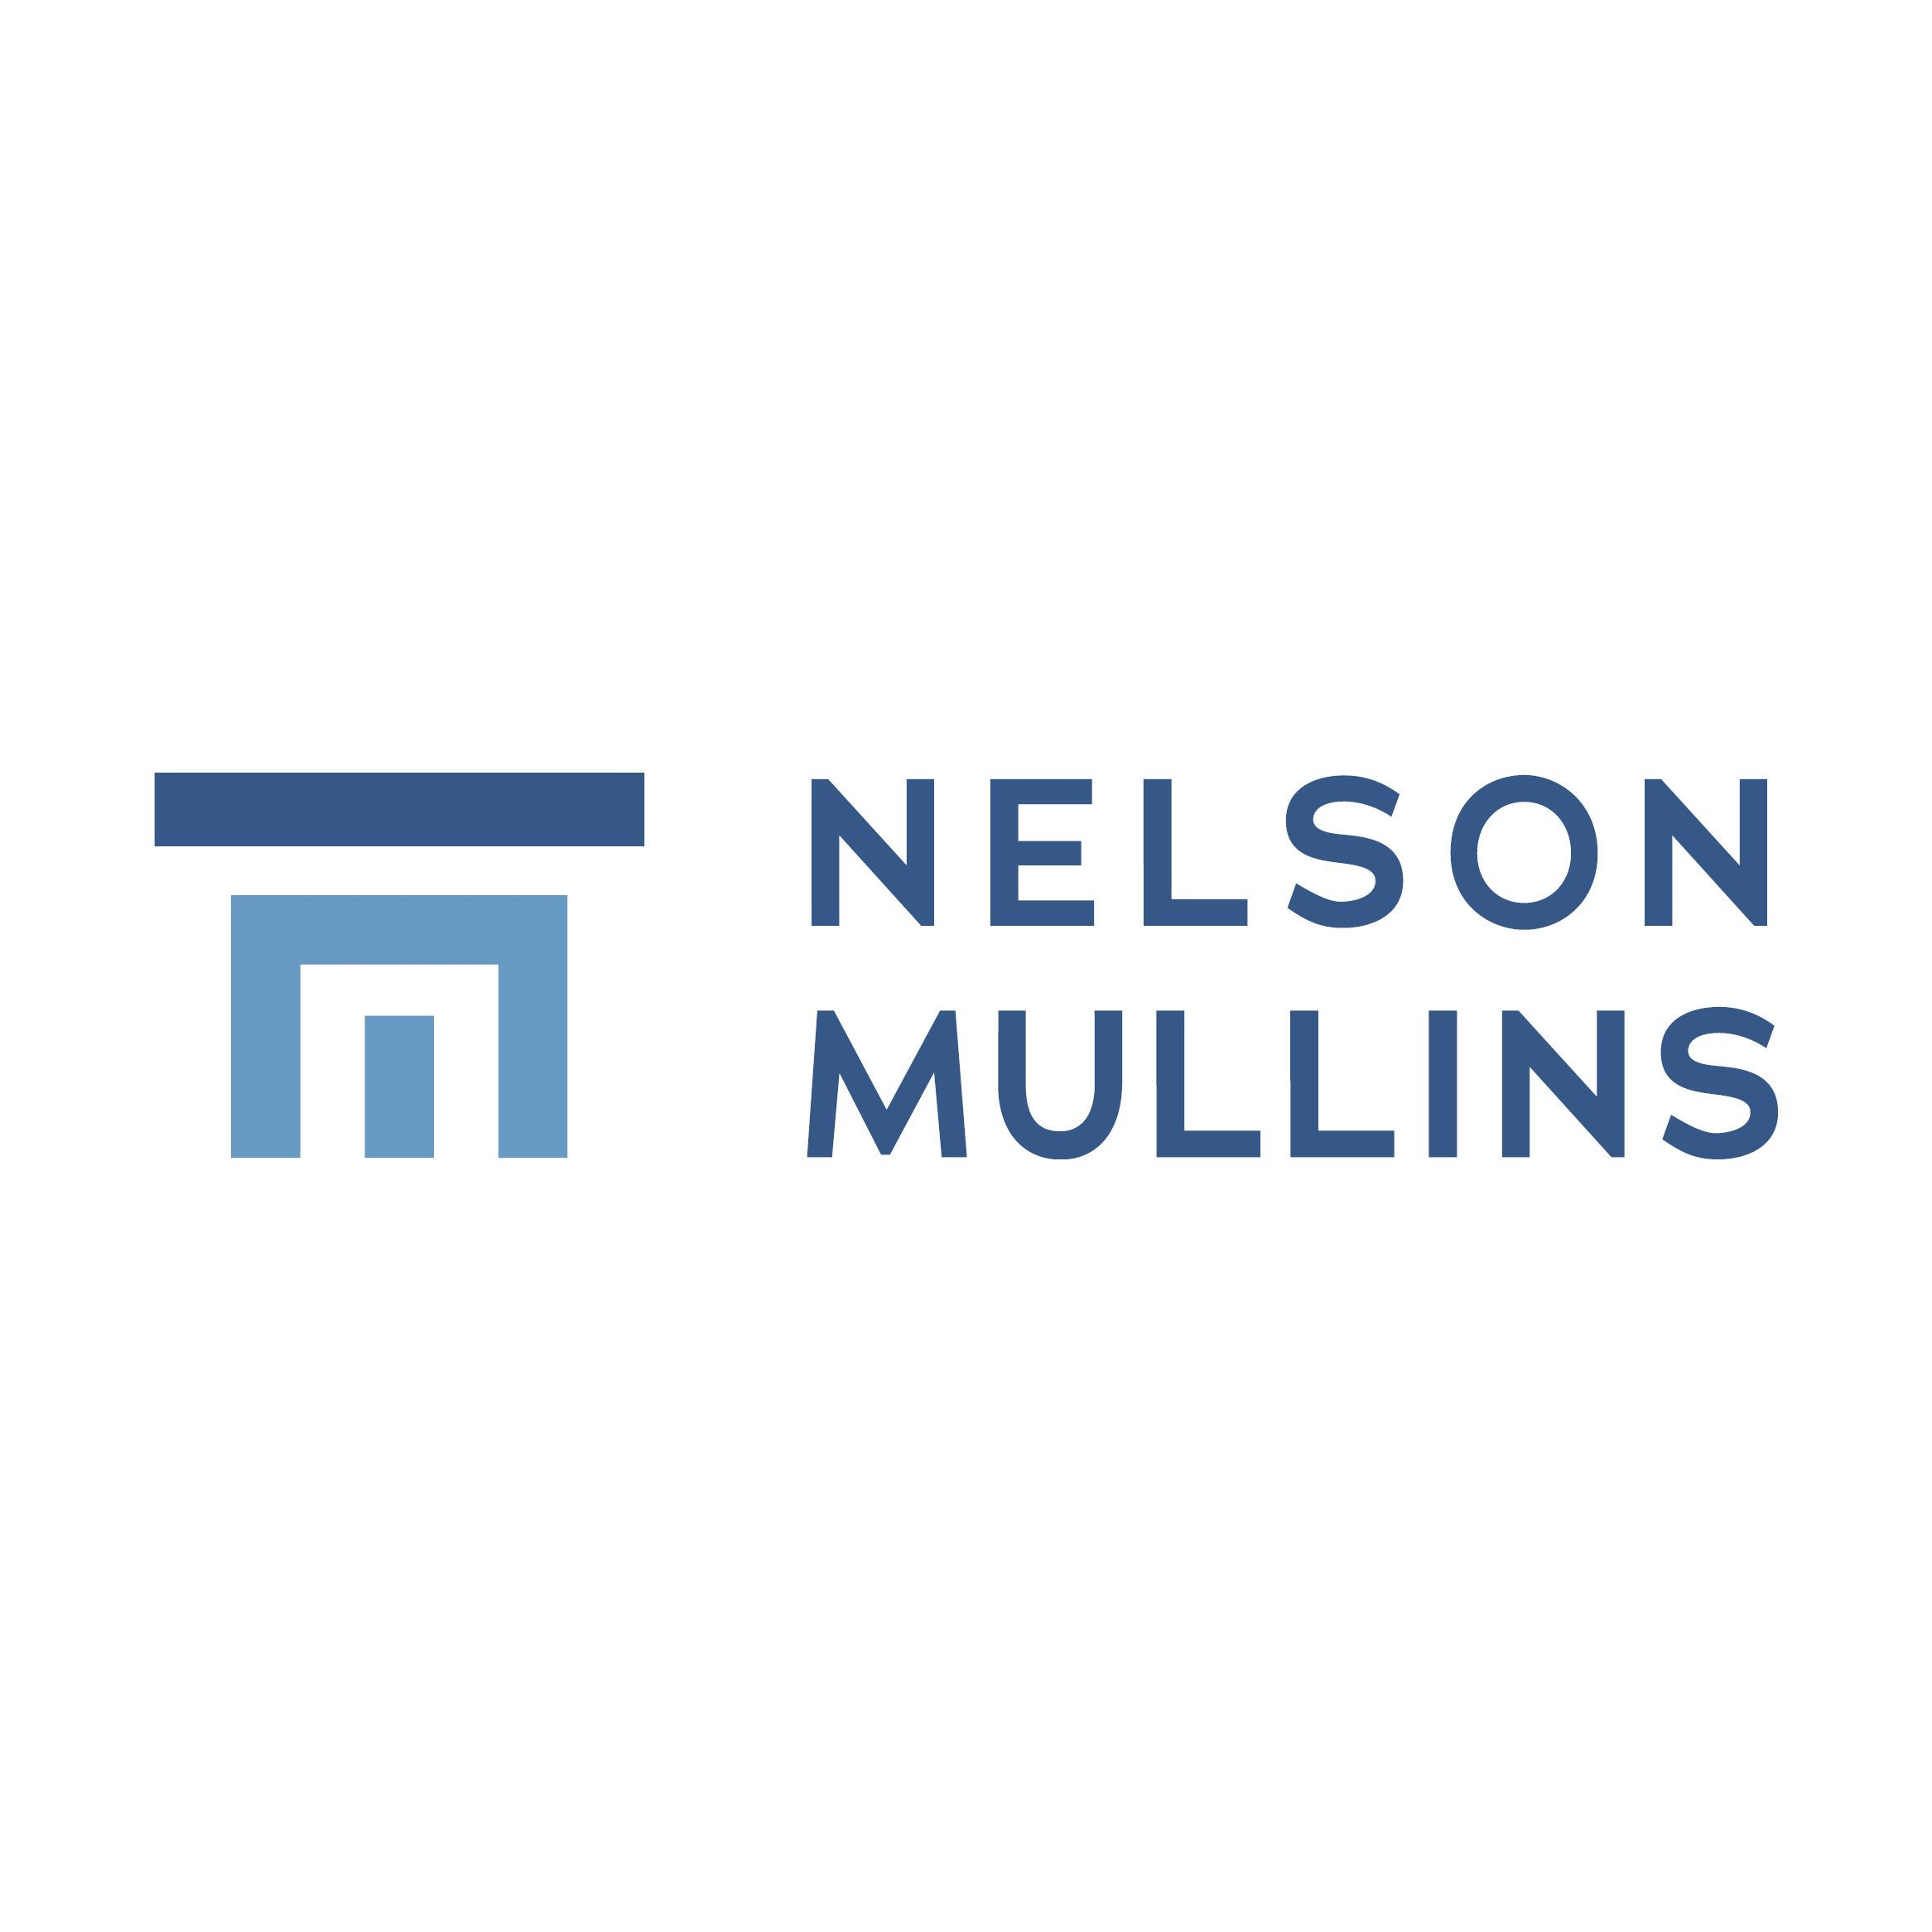 Nelson Mullins 2020 Ad 560x560